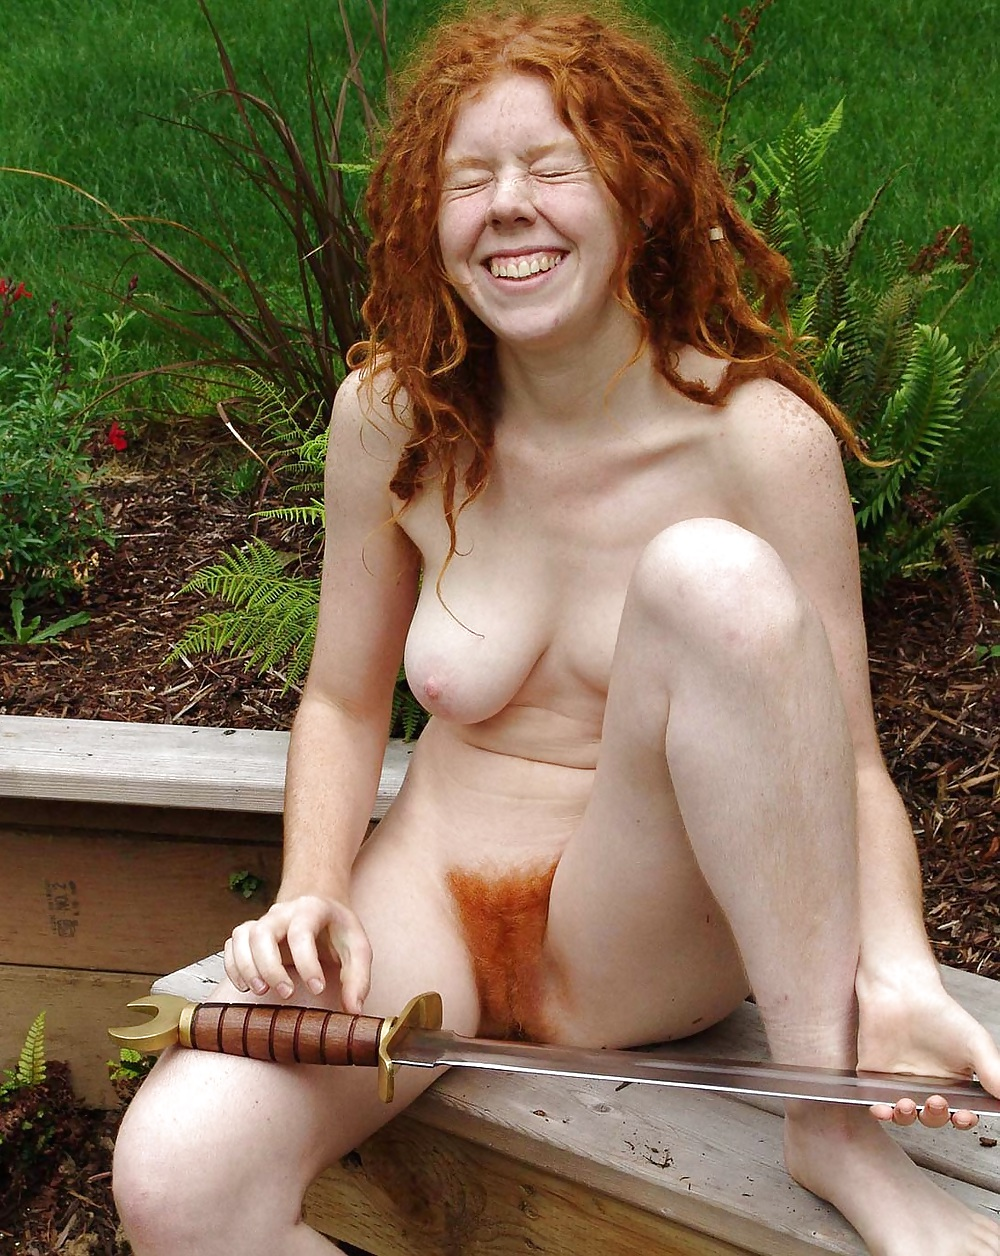 hairy-female-redhead-nudist